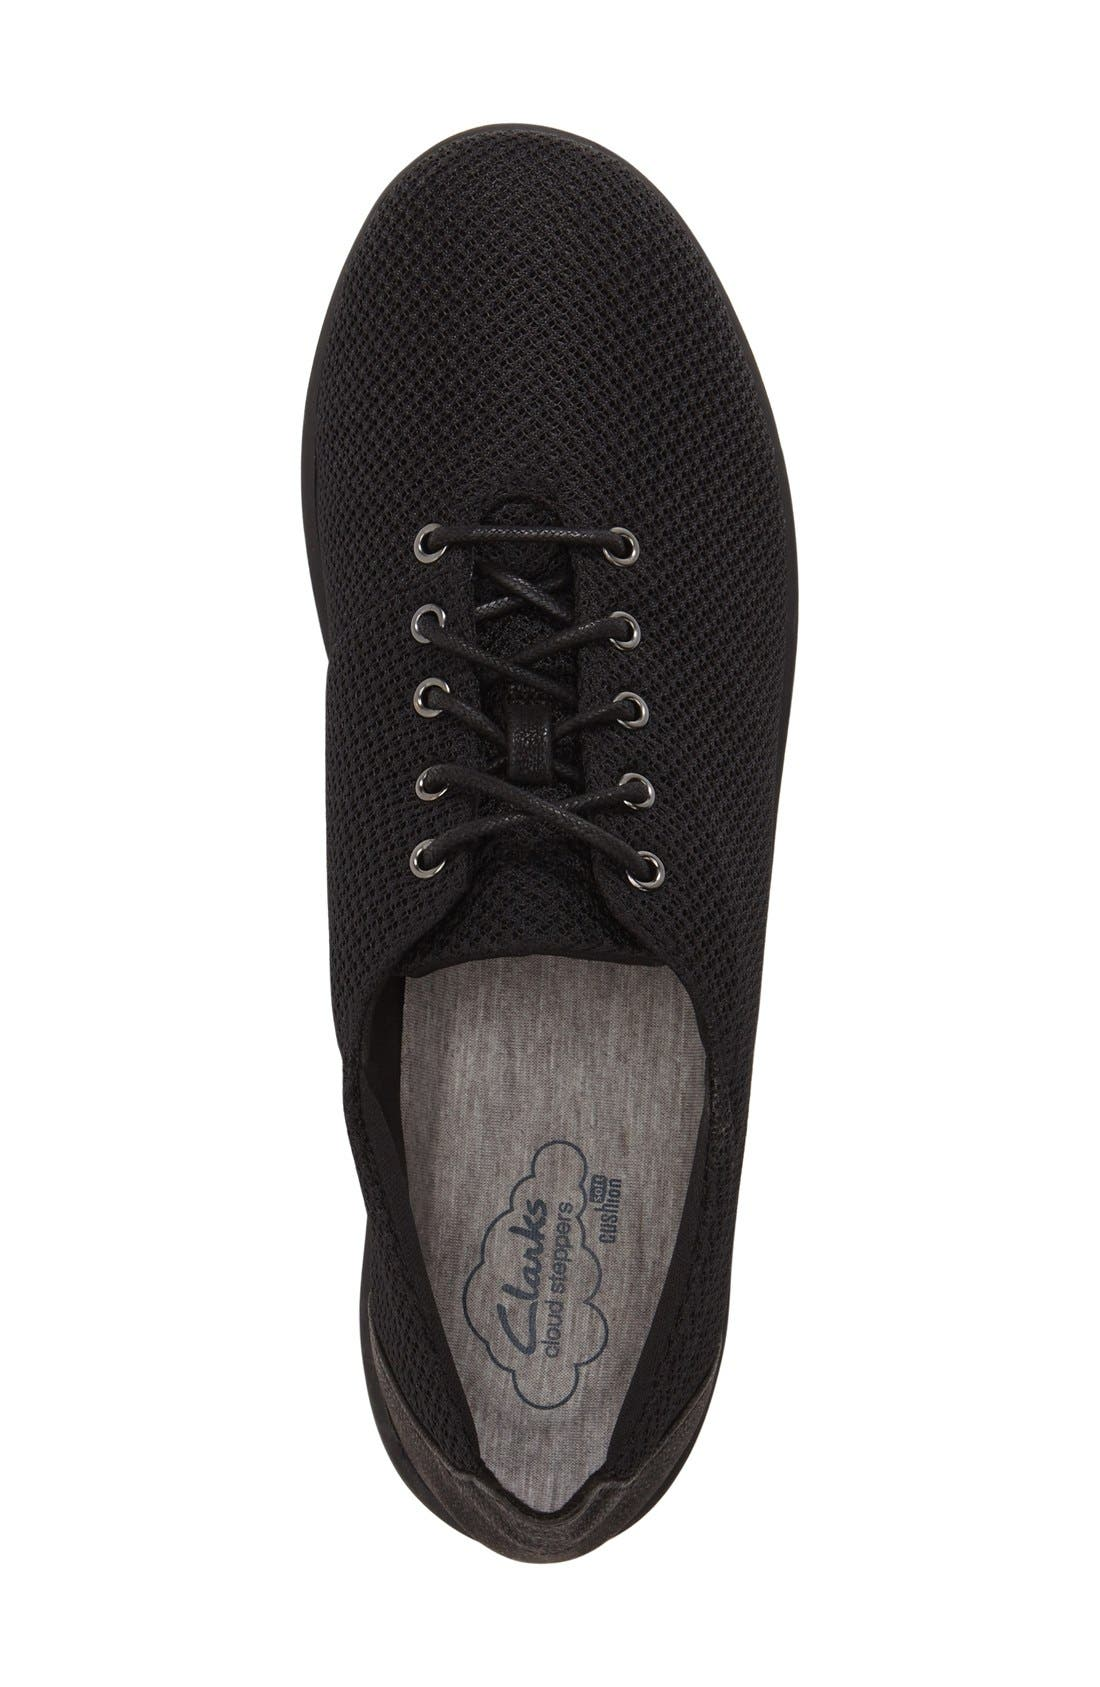 Clarks<sup>®</sup> 'Sillian - Tino' Sneaker,                             Alternate thumbnail 6, color,                             001